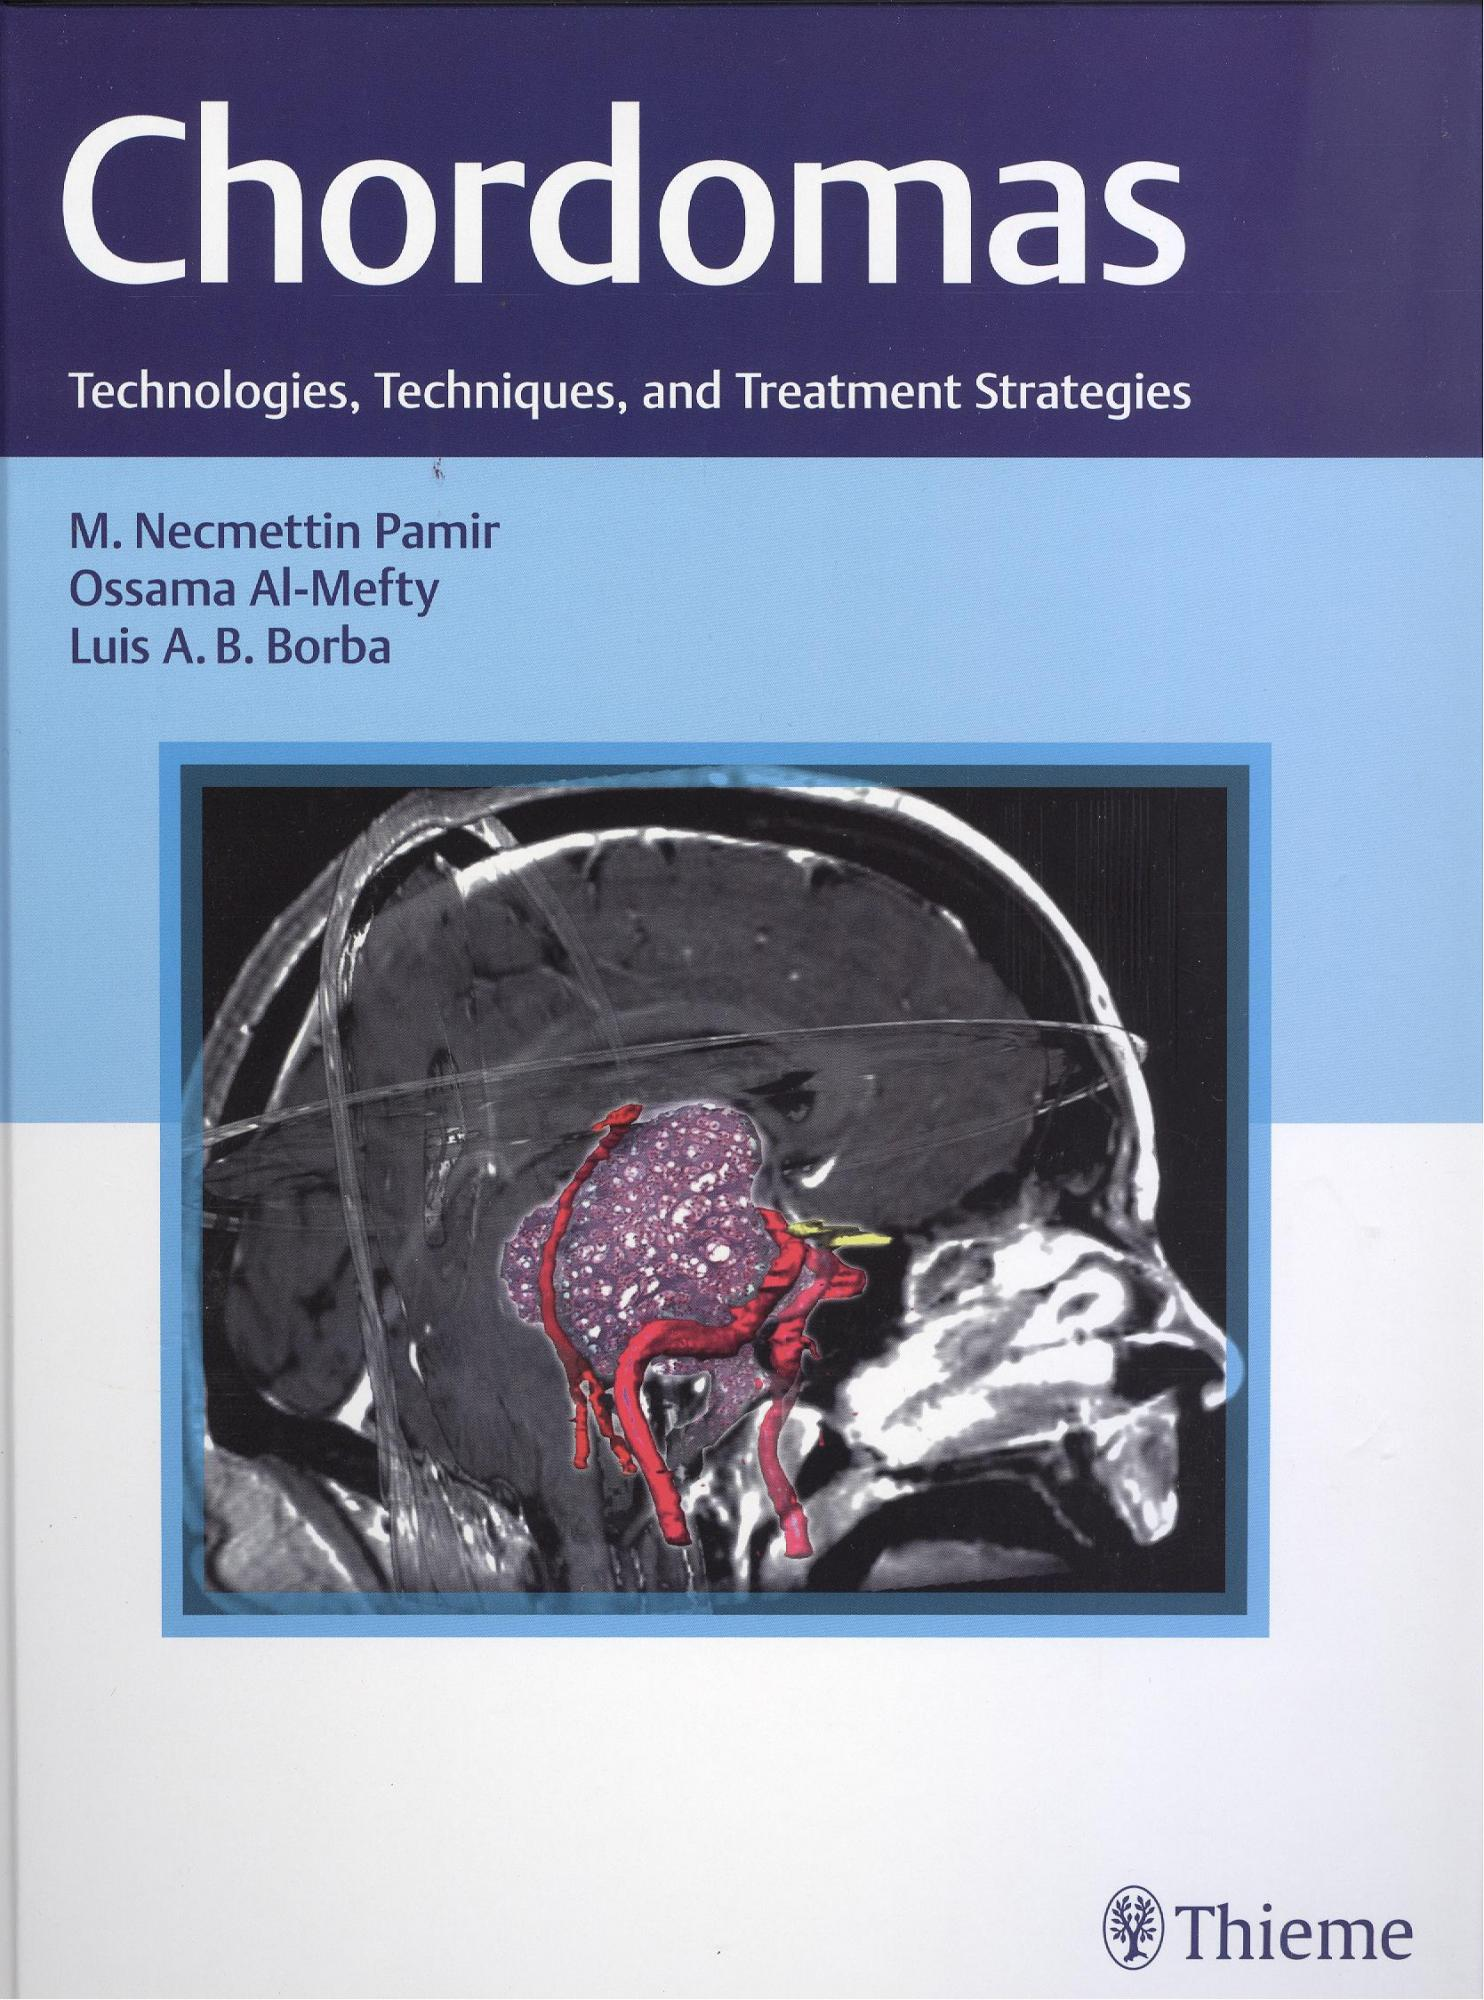 Chordomas: Technologies, Techniques, and Treatment Strategies